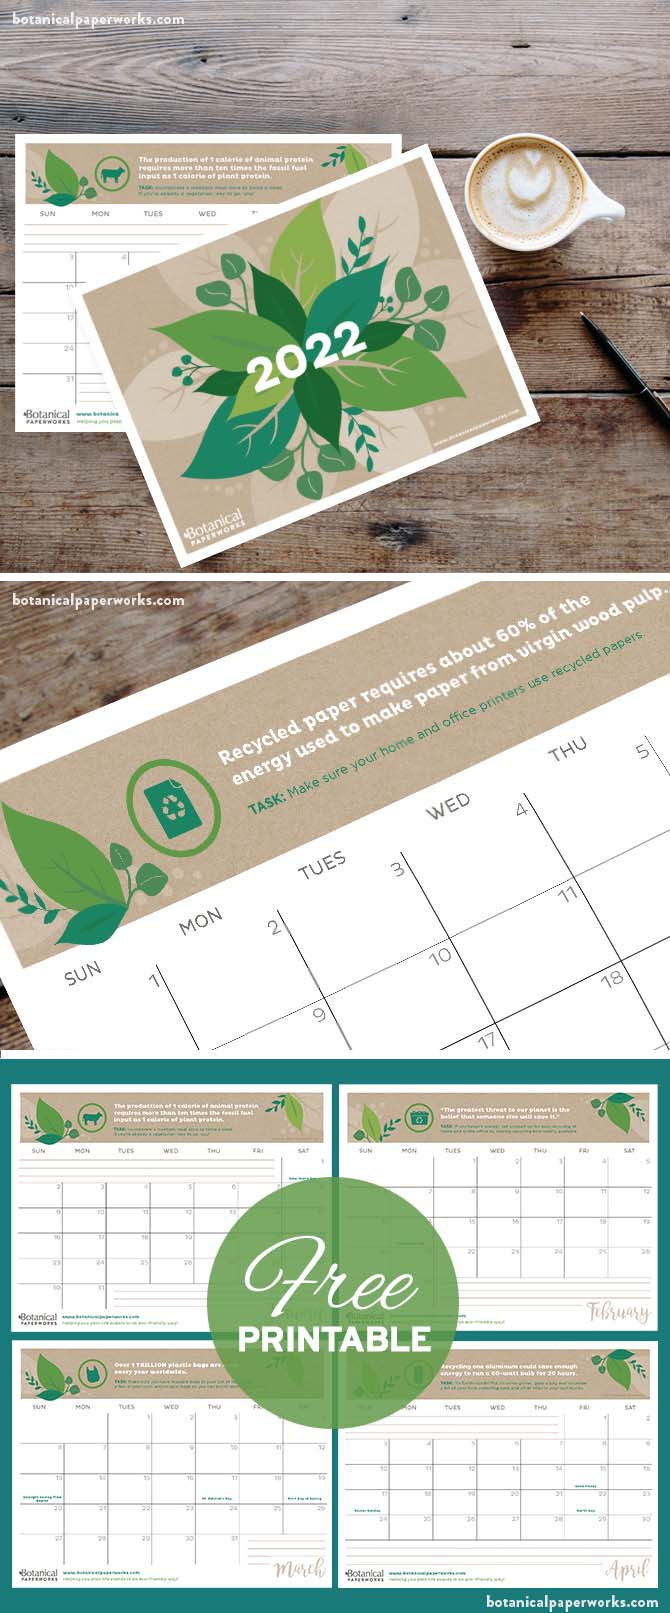 free printable 2022 calendars with eco-friendly tips